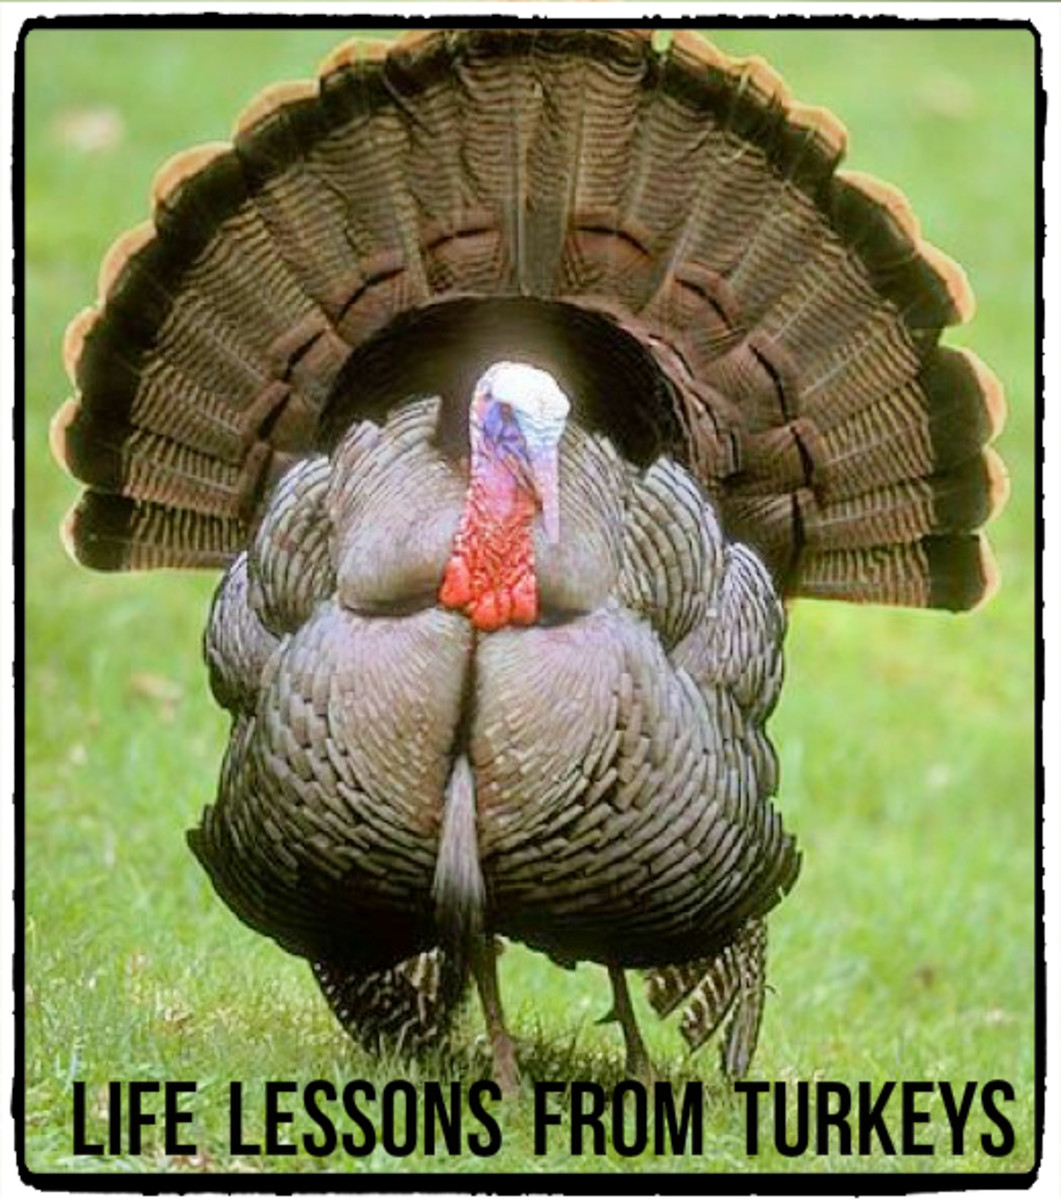 Although many people think of turkeys as stupid animals, this is untrue.  Their reputations have been unfairly earned because of an inherited neurological disorder, tetanic torticollar spasm.  It causes staring at the sky for up to a minute.